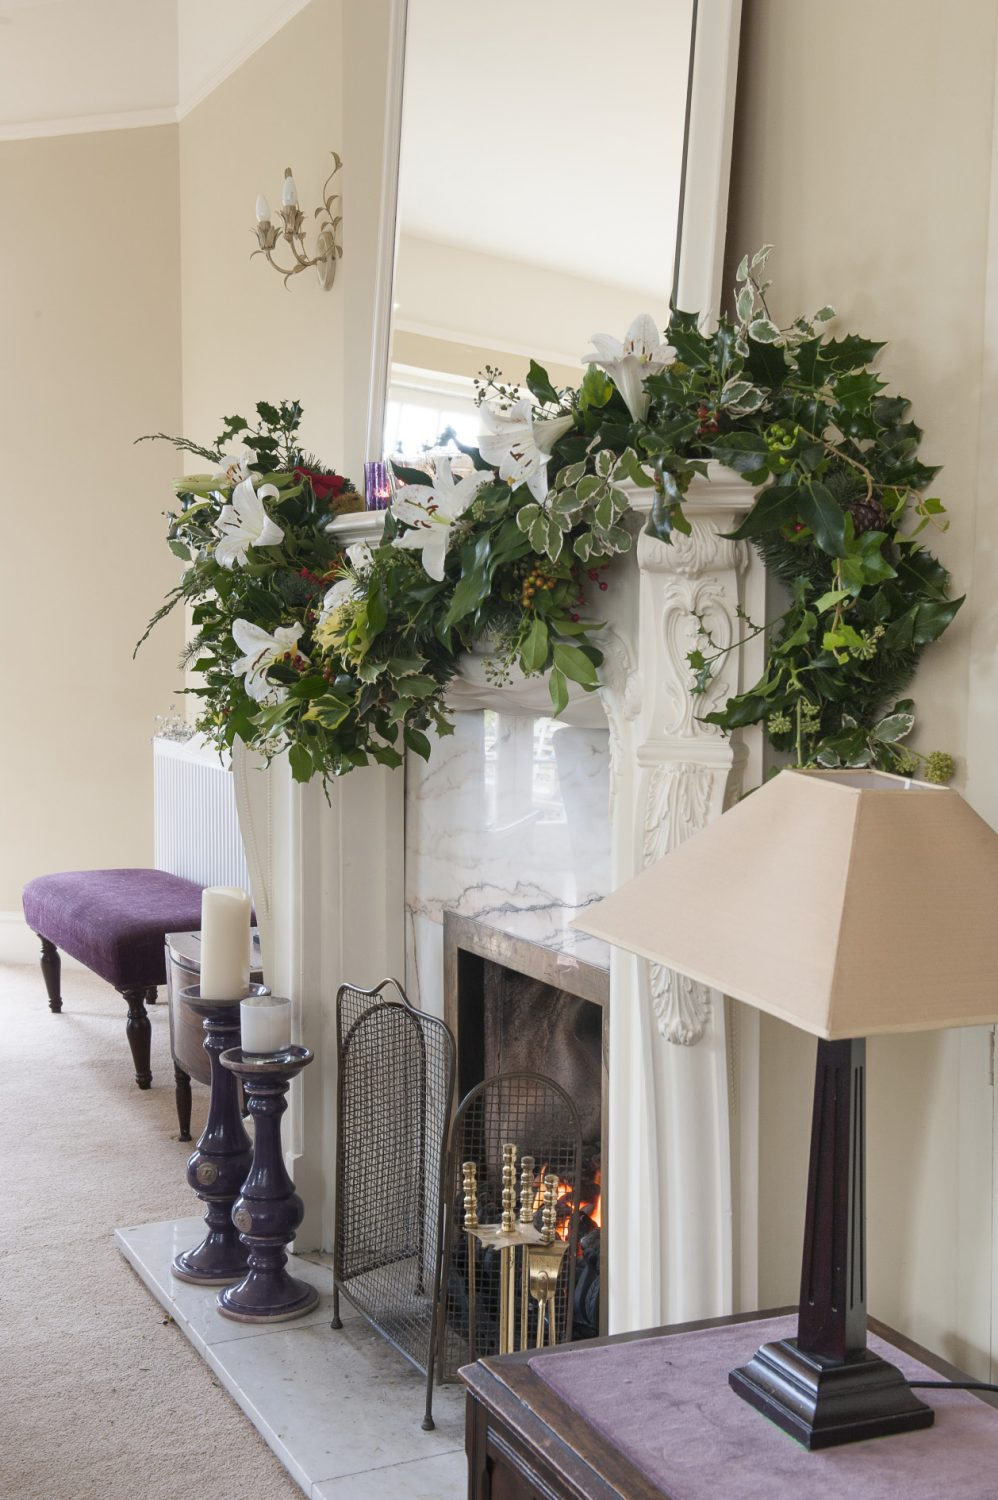 In the drawing room a marble fireplace has been adorned with a swag of berried holly, dark evergreen leaves and white stargazer lilies. The Christmas tree has been decorated with purple and gold ornaments